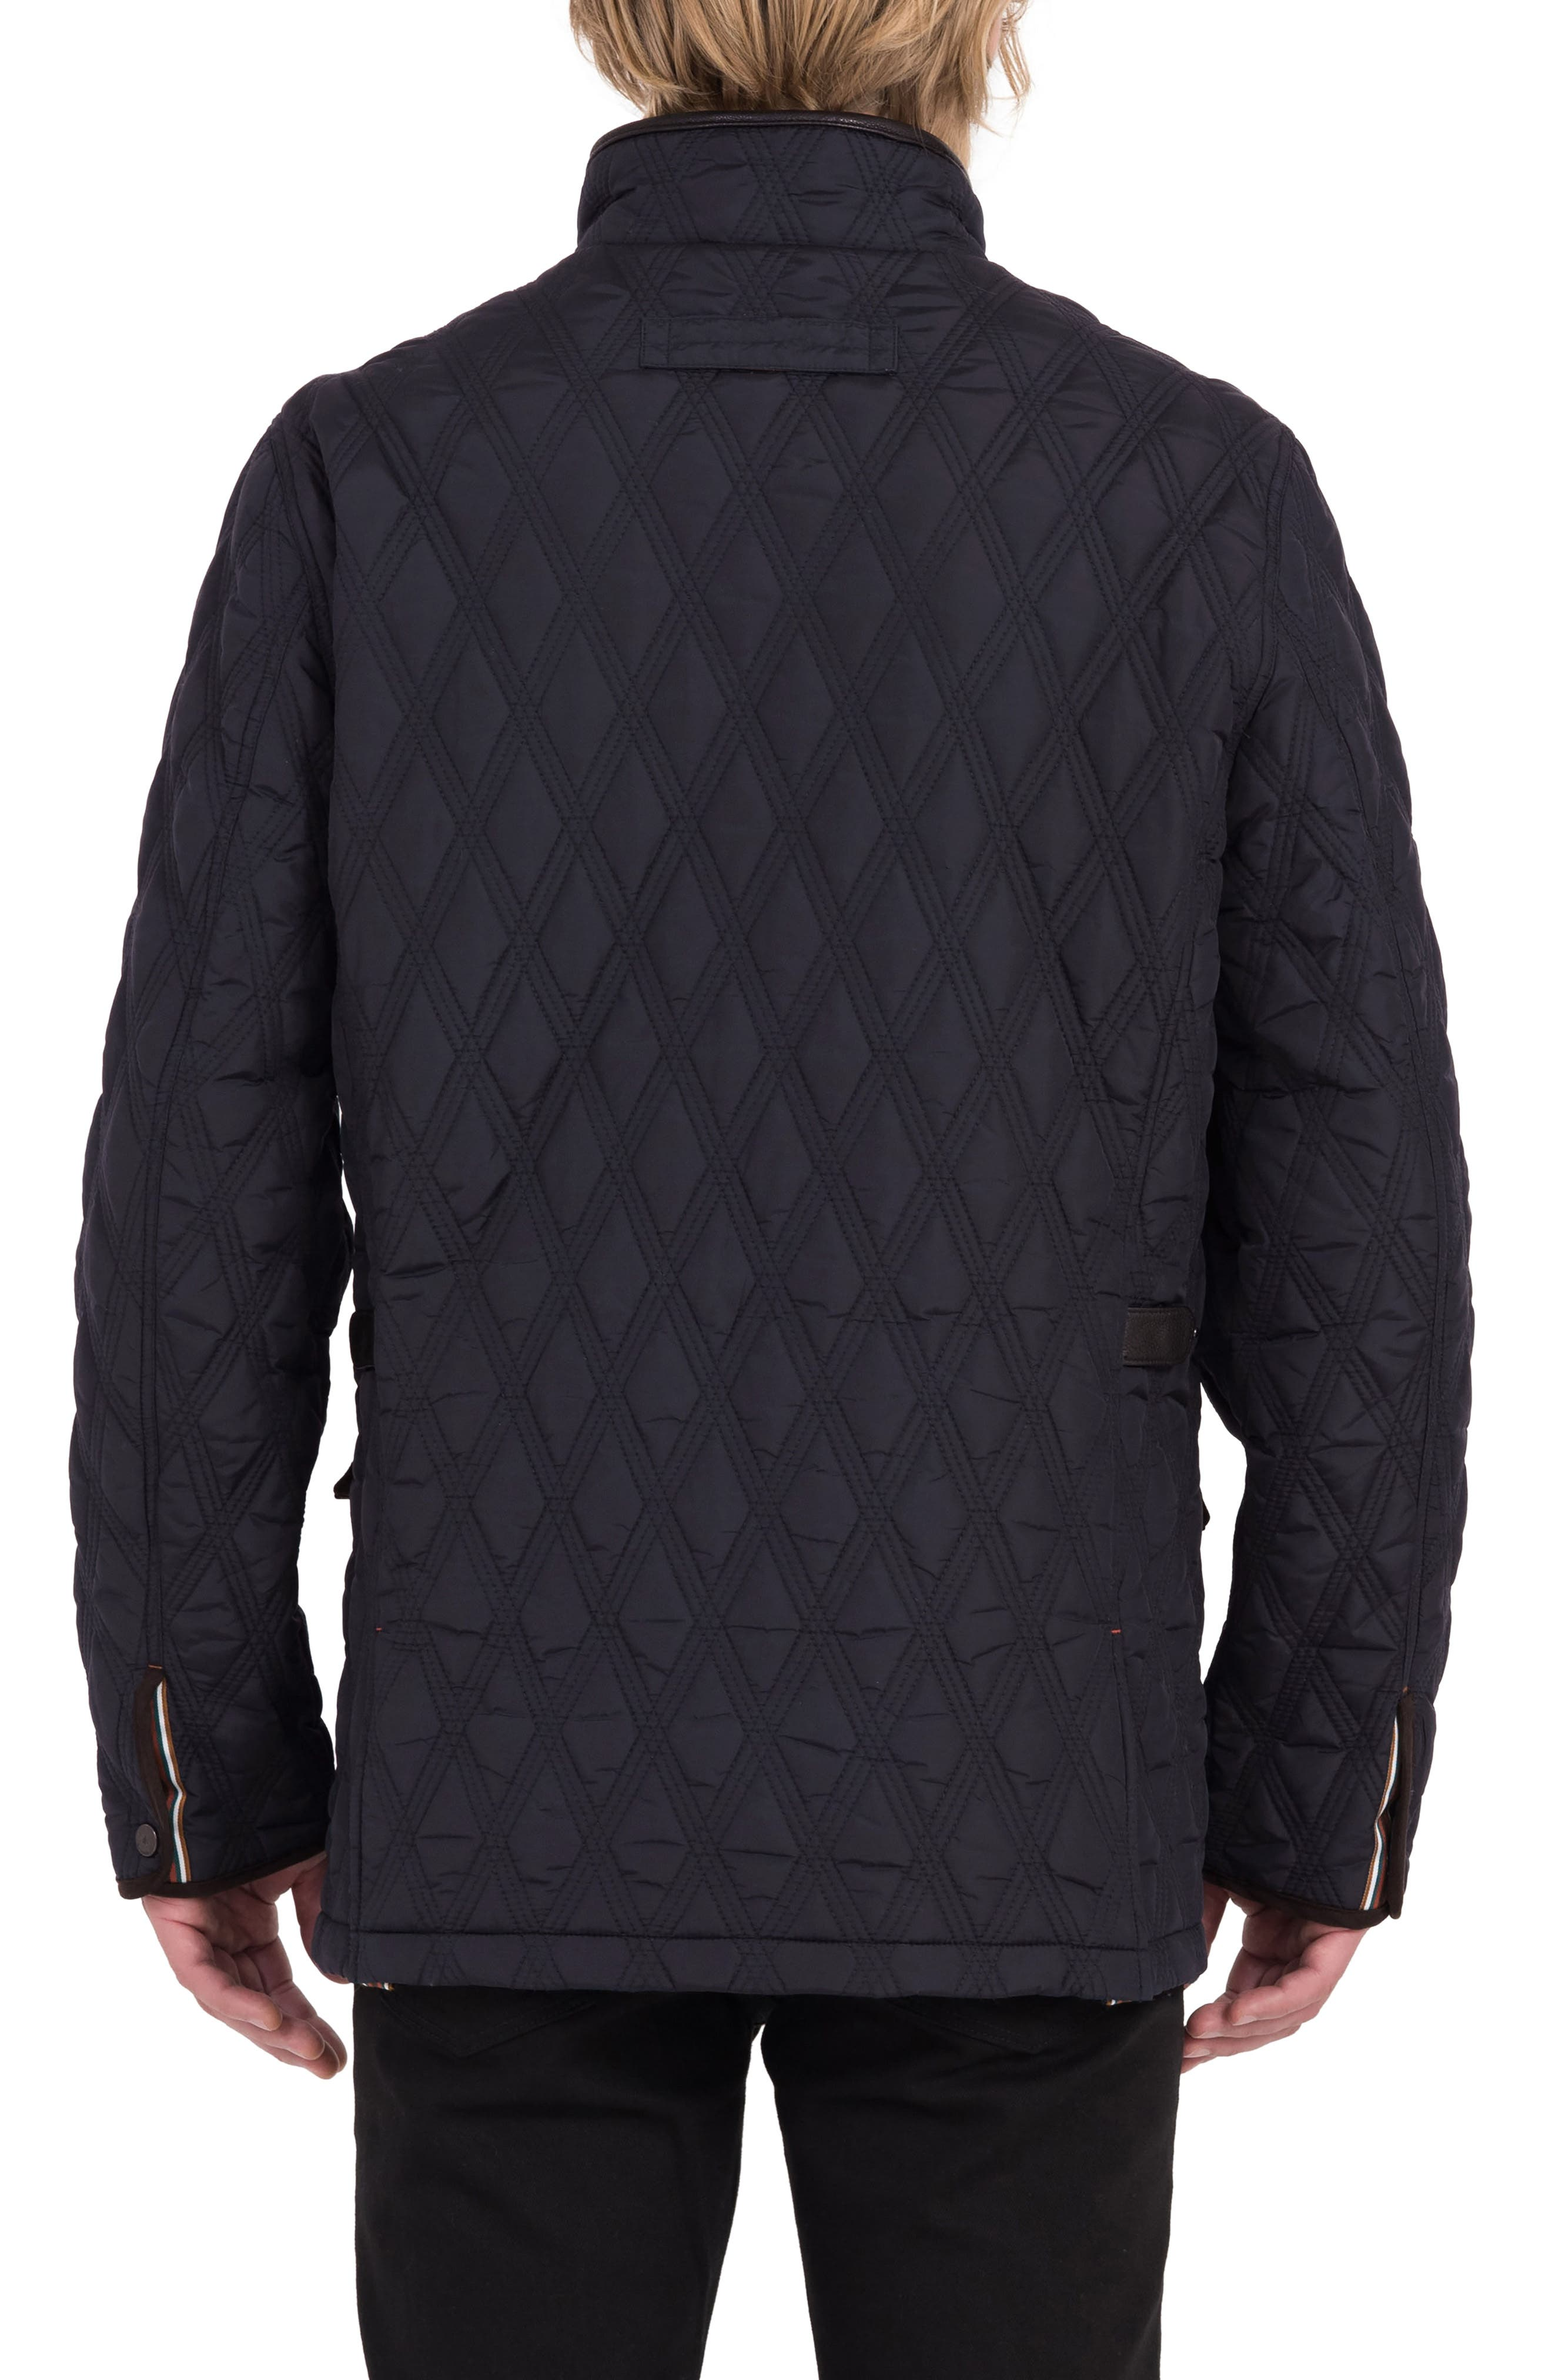 Alternate Image 2  - ThermoLUXE® Prichard Triple Stitch Quilted Heat System Jacket